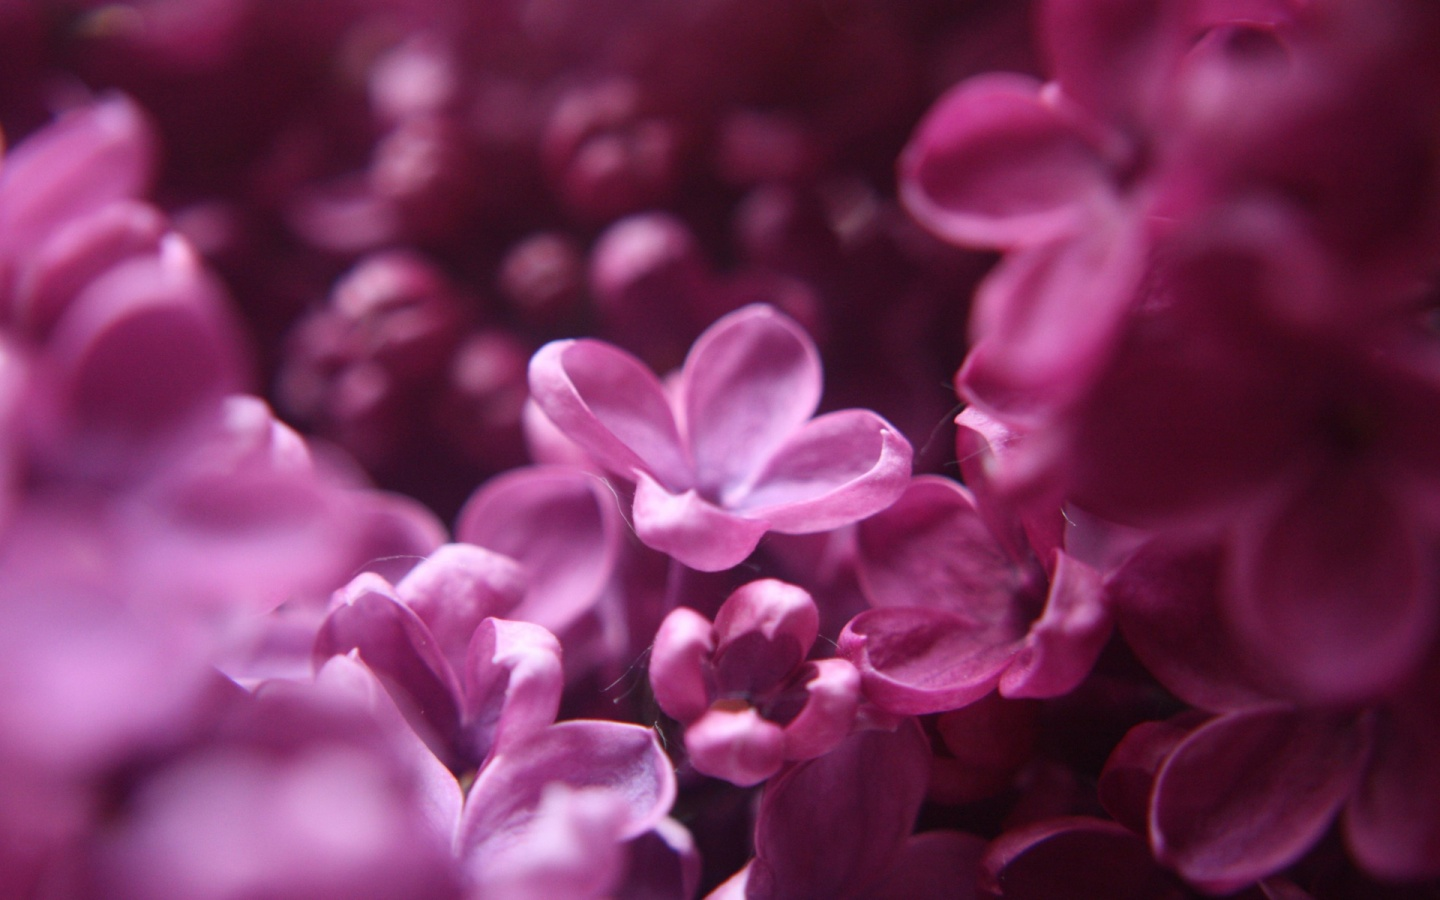 lilac 1440x900 wallpaper download page 264259 1440x900